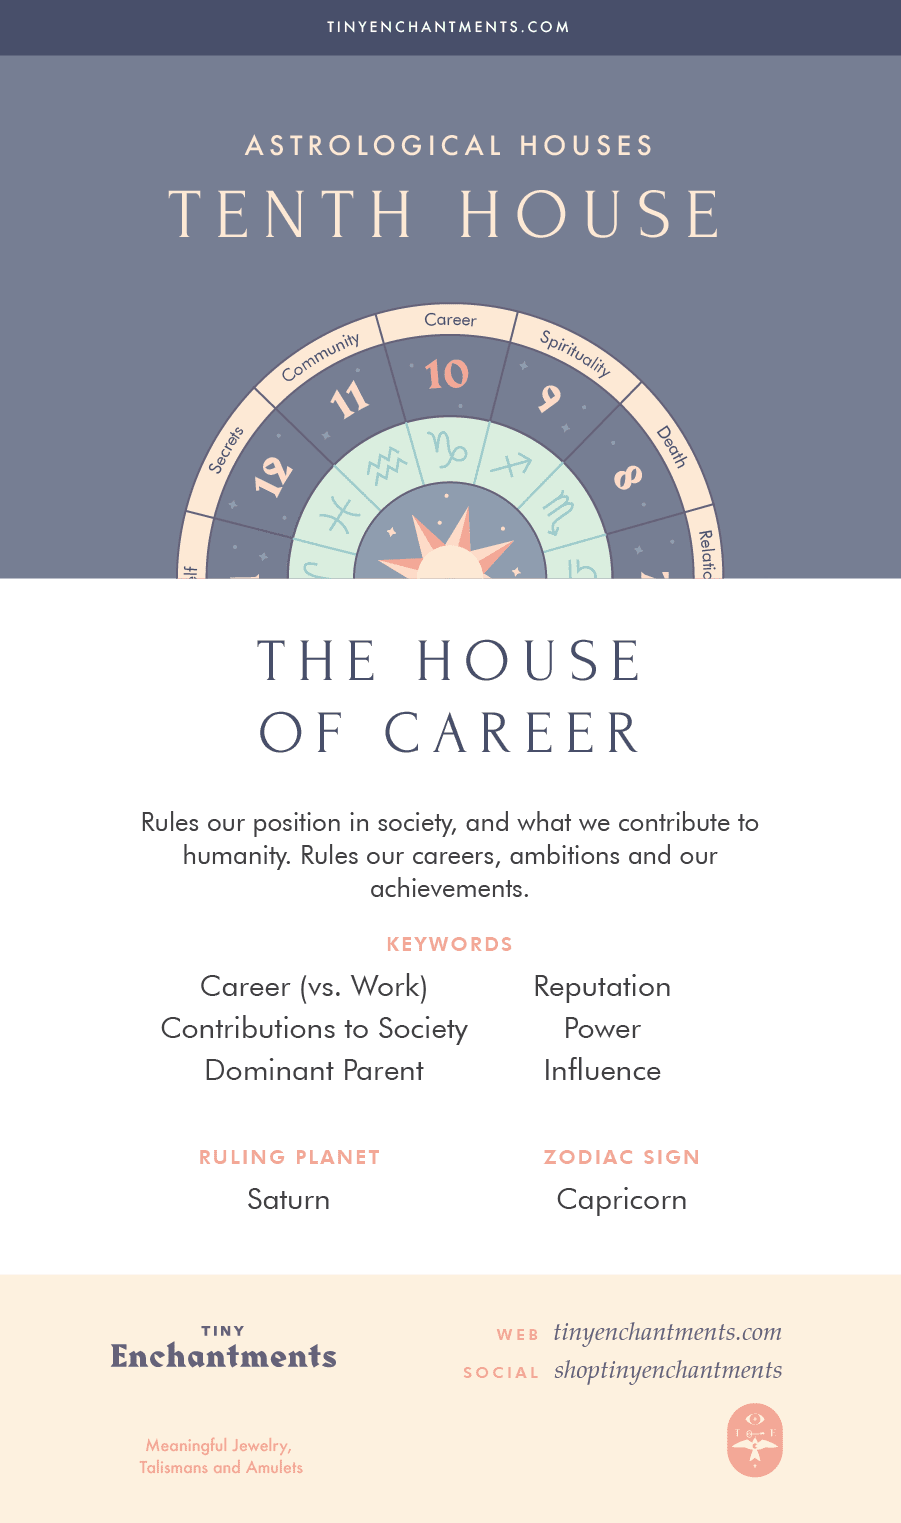 The Tenth House - The House of Career - 10th House in Astrology